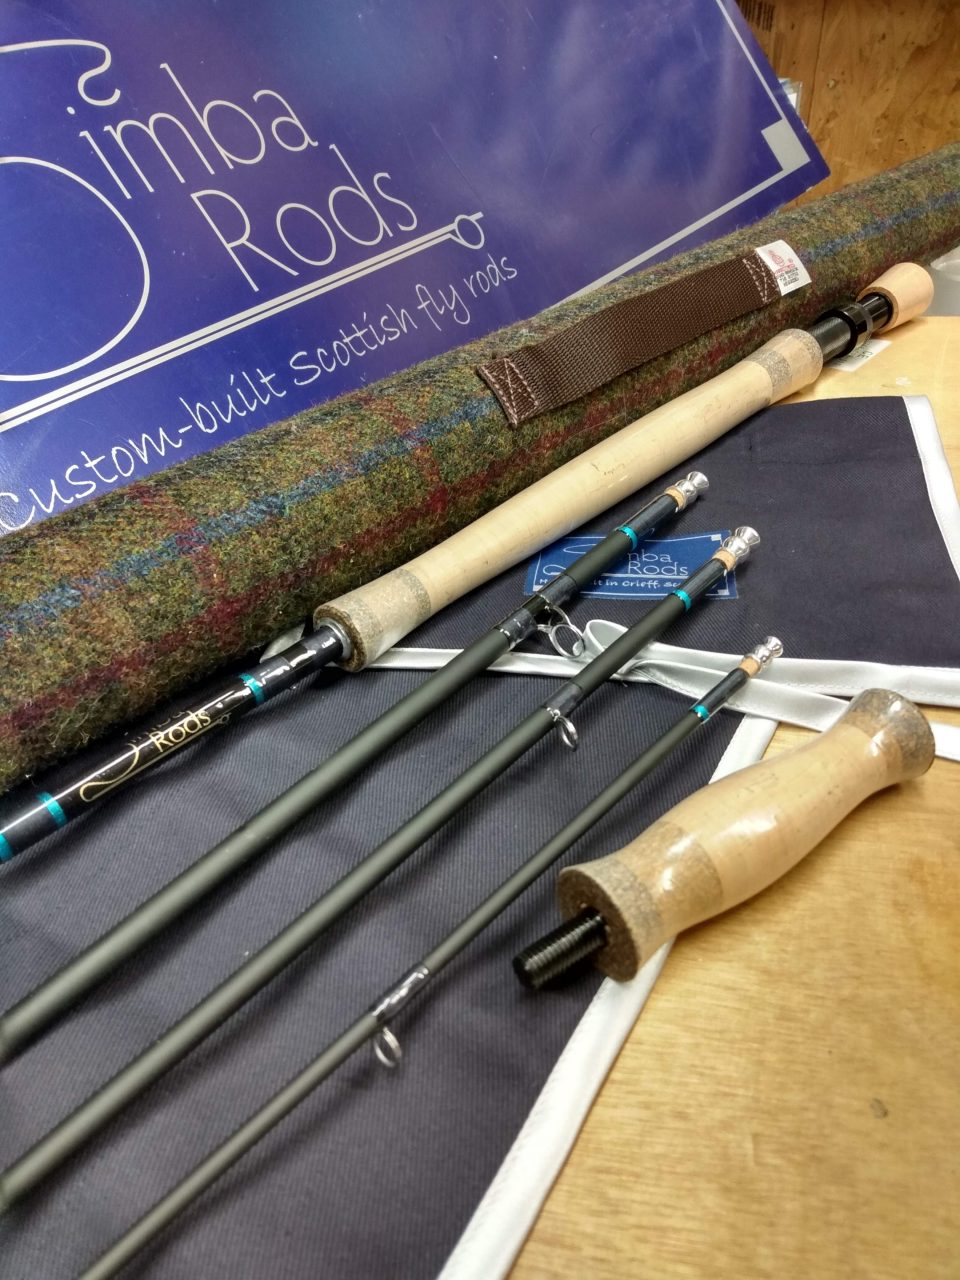 Nymphing Rod